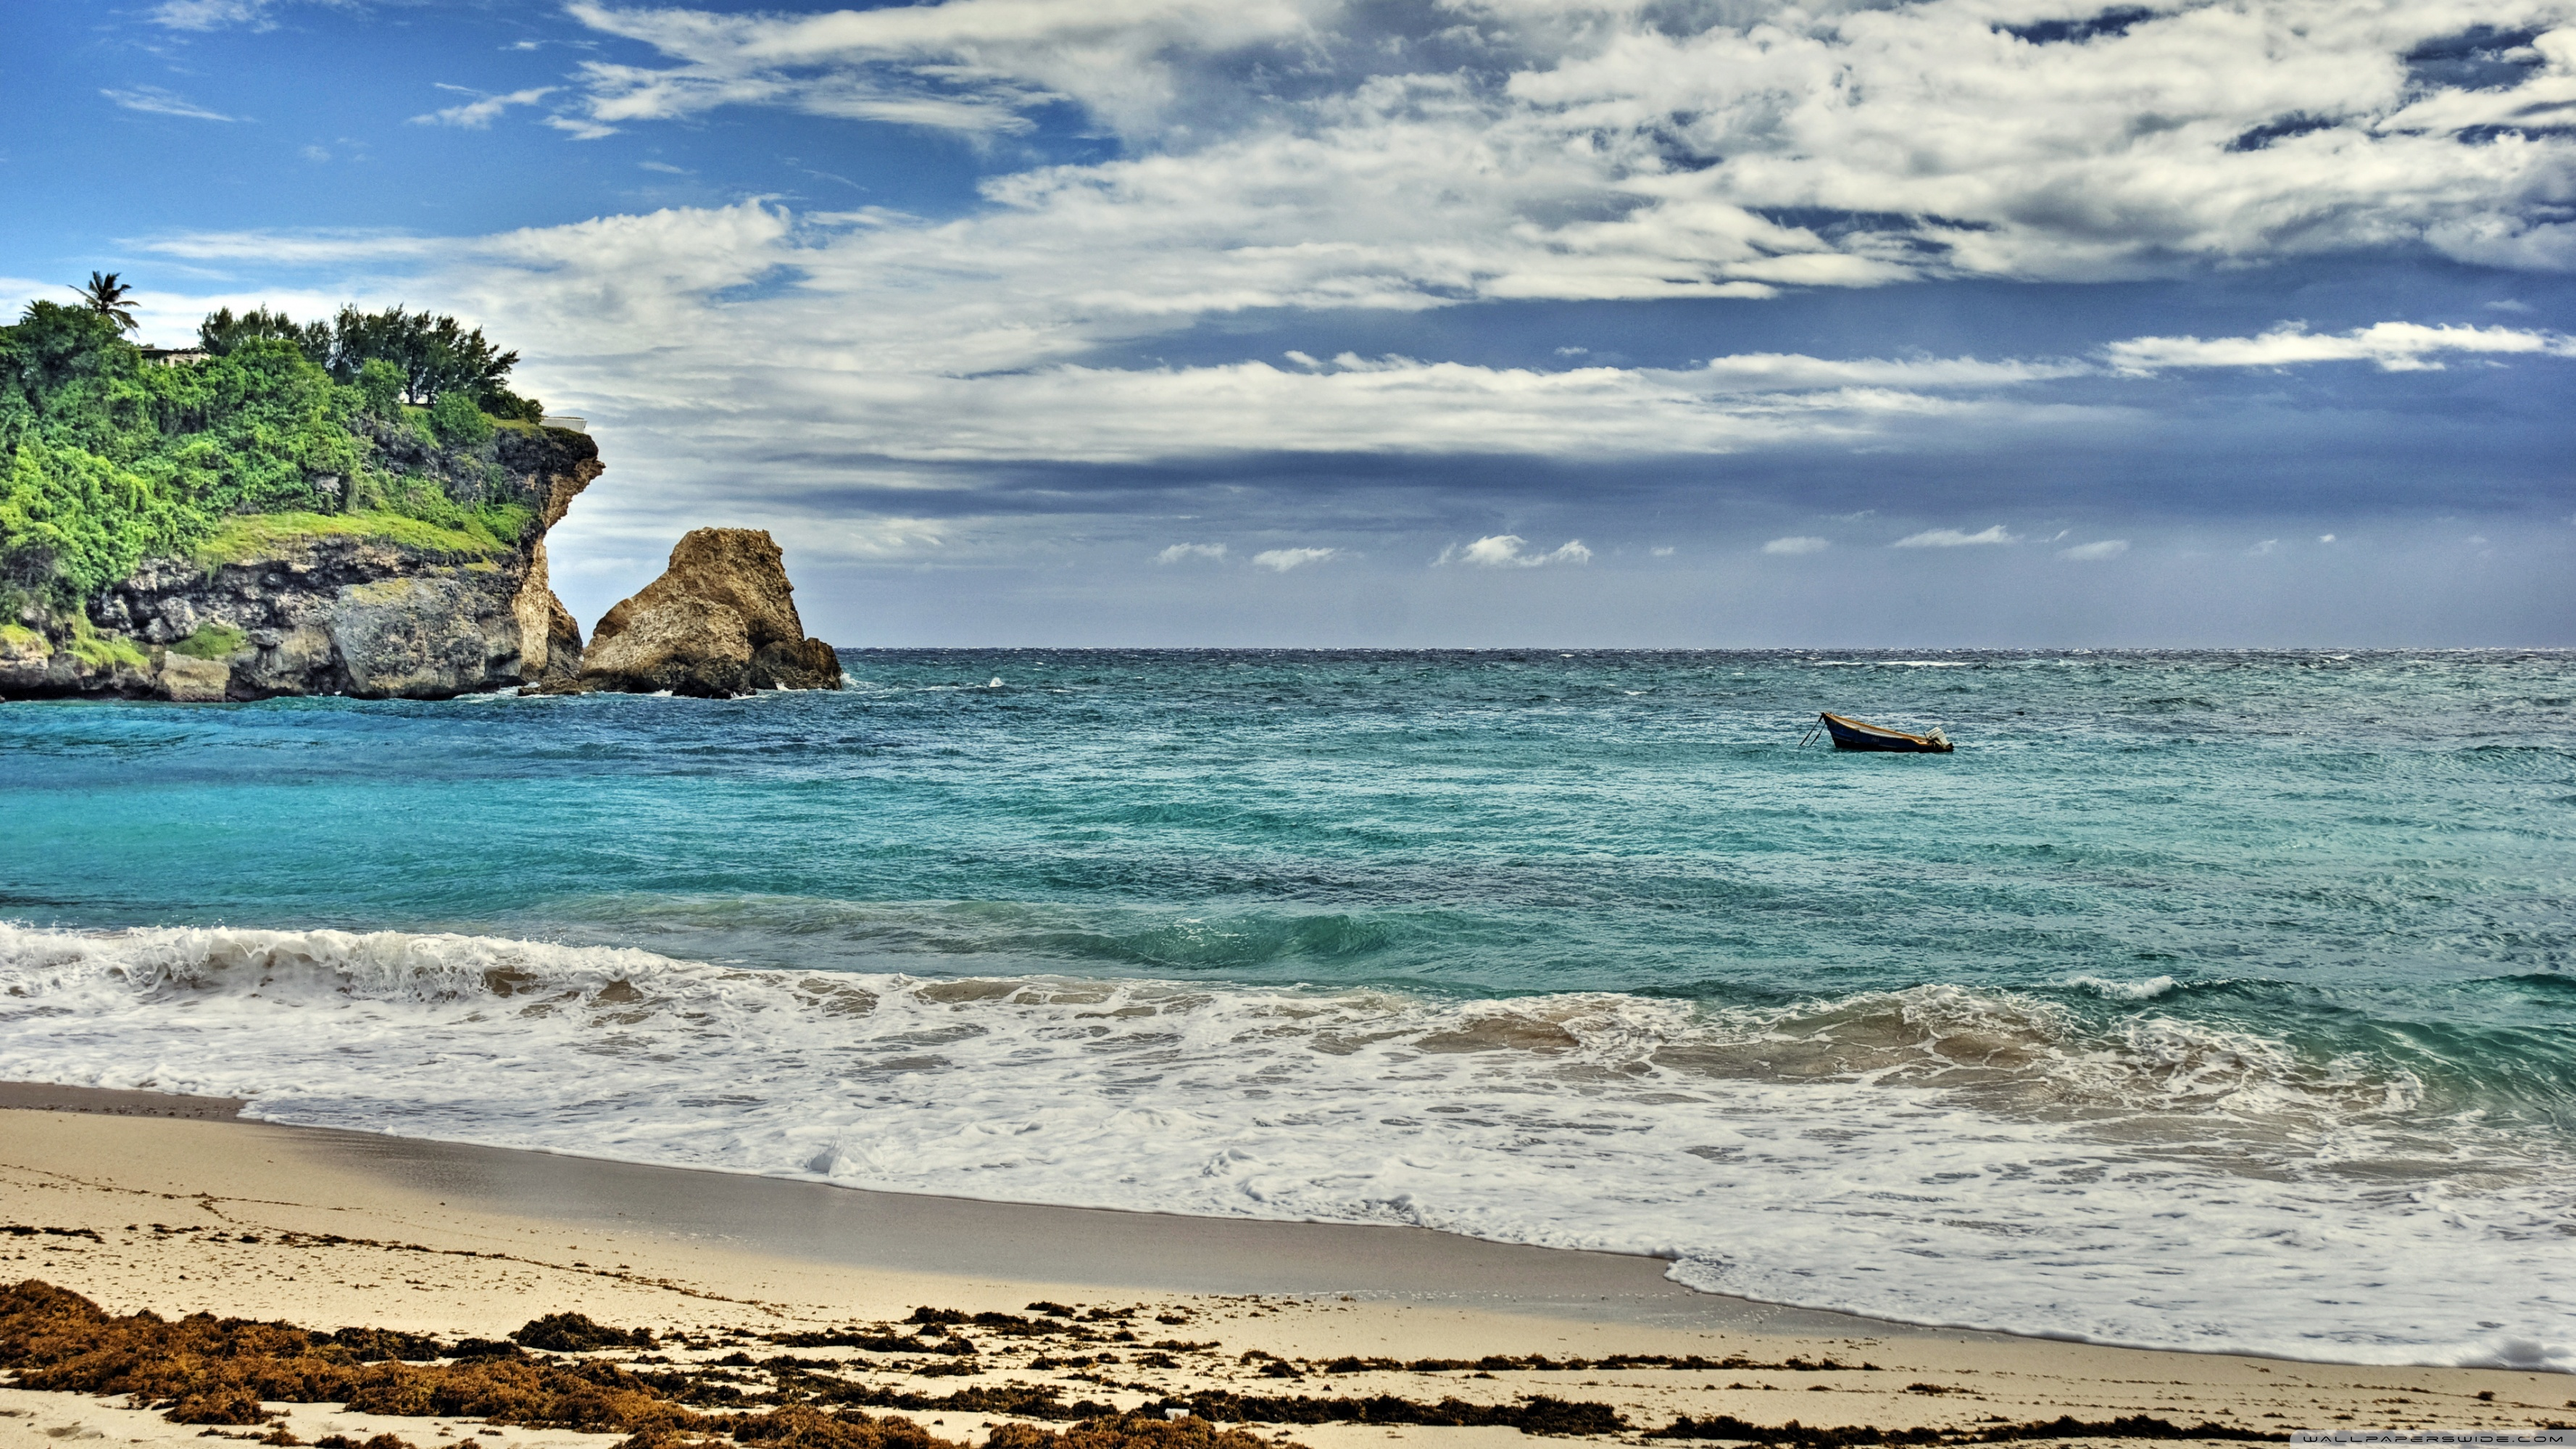 Barbados 4K HD Desktop Wallpaper for Dual Monitor Desktops 3554x1999